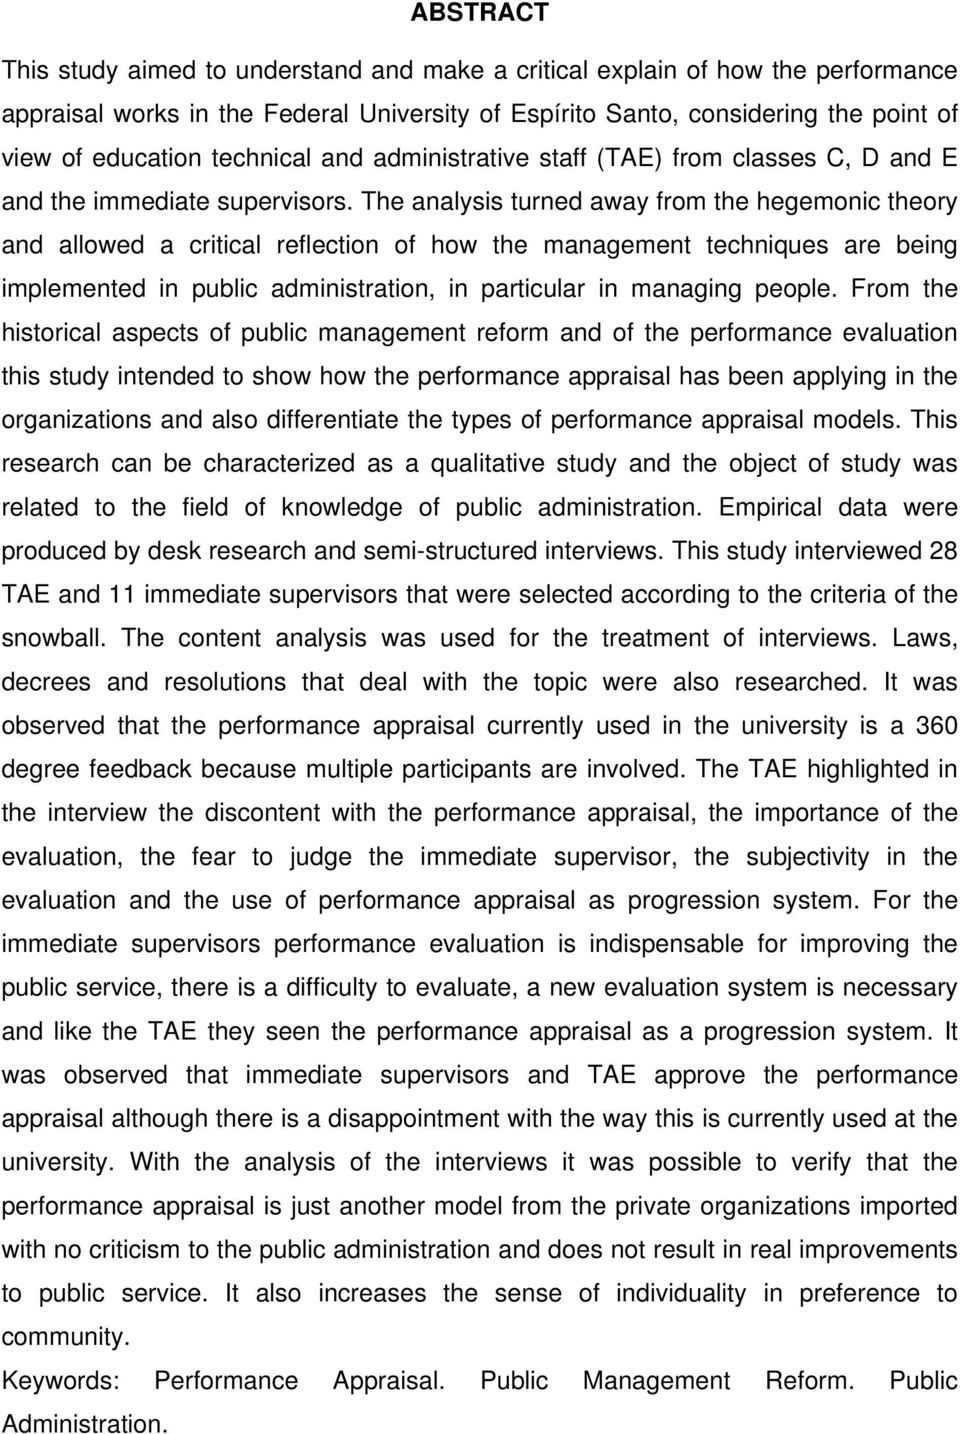 The analysis turned away from the hegemonic theory and allowed a critical reflection of how the management techniques are being implemented in public administration, in particular in managing people.